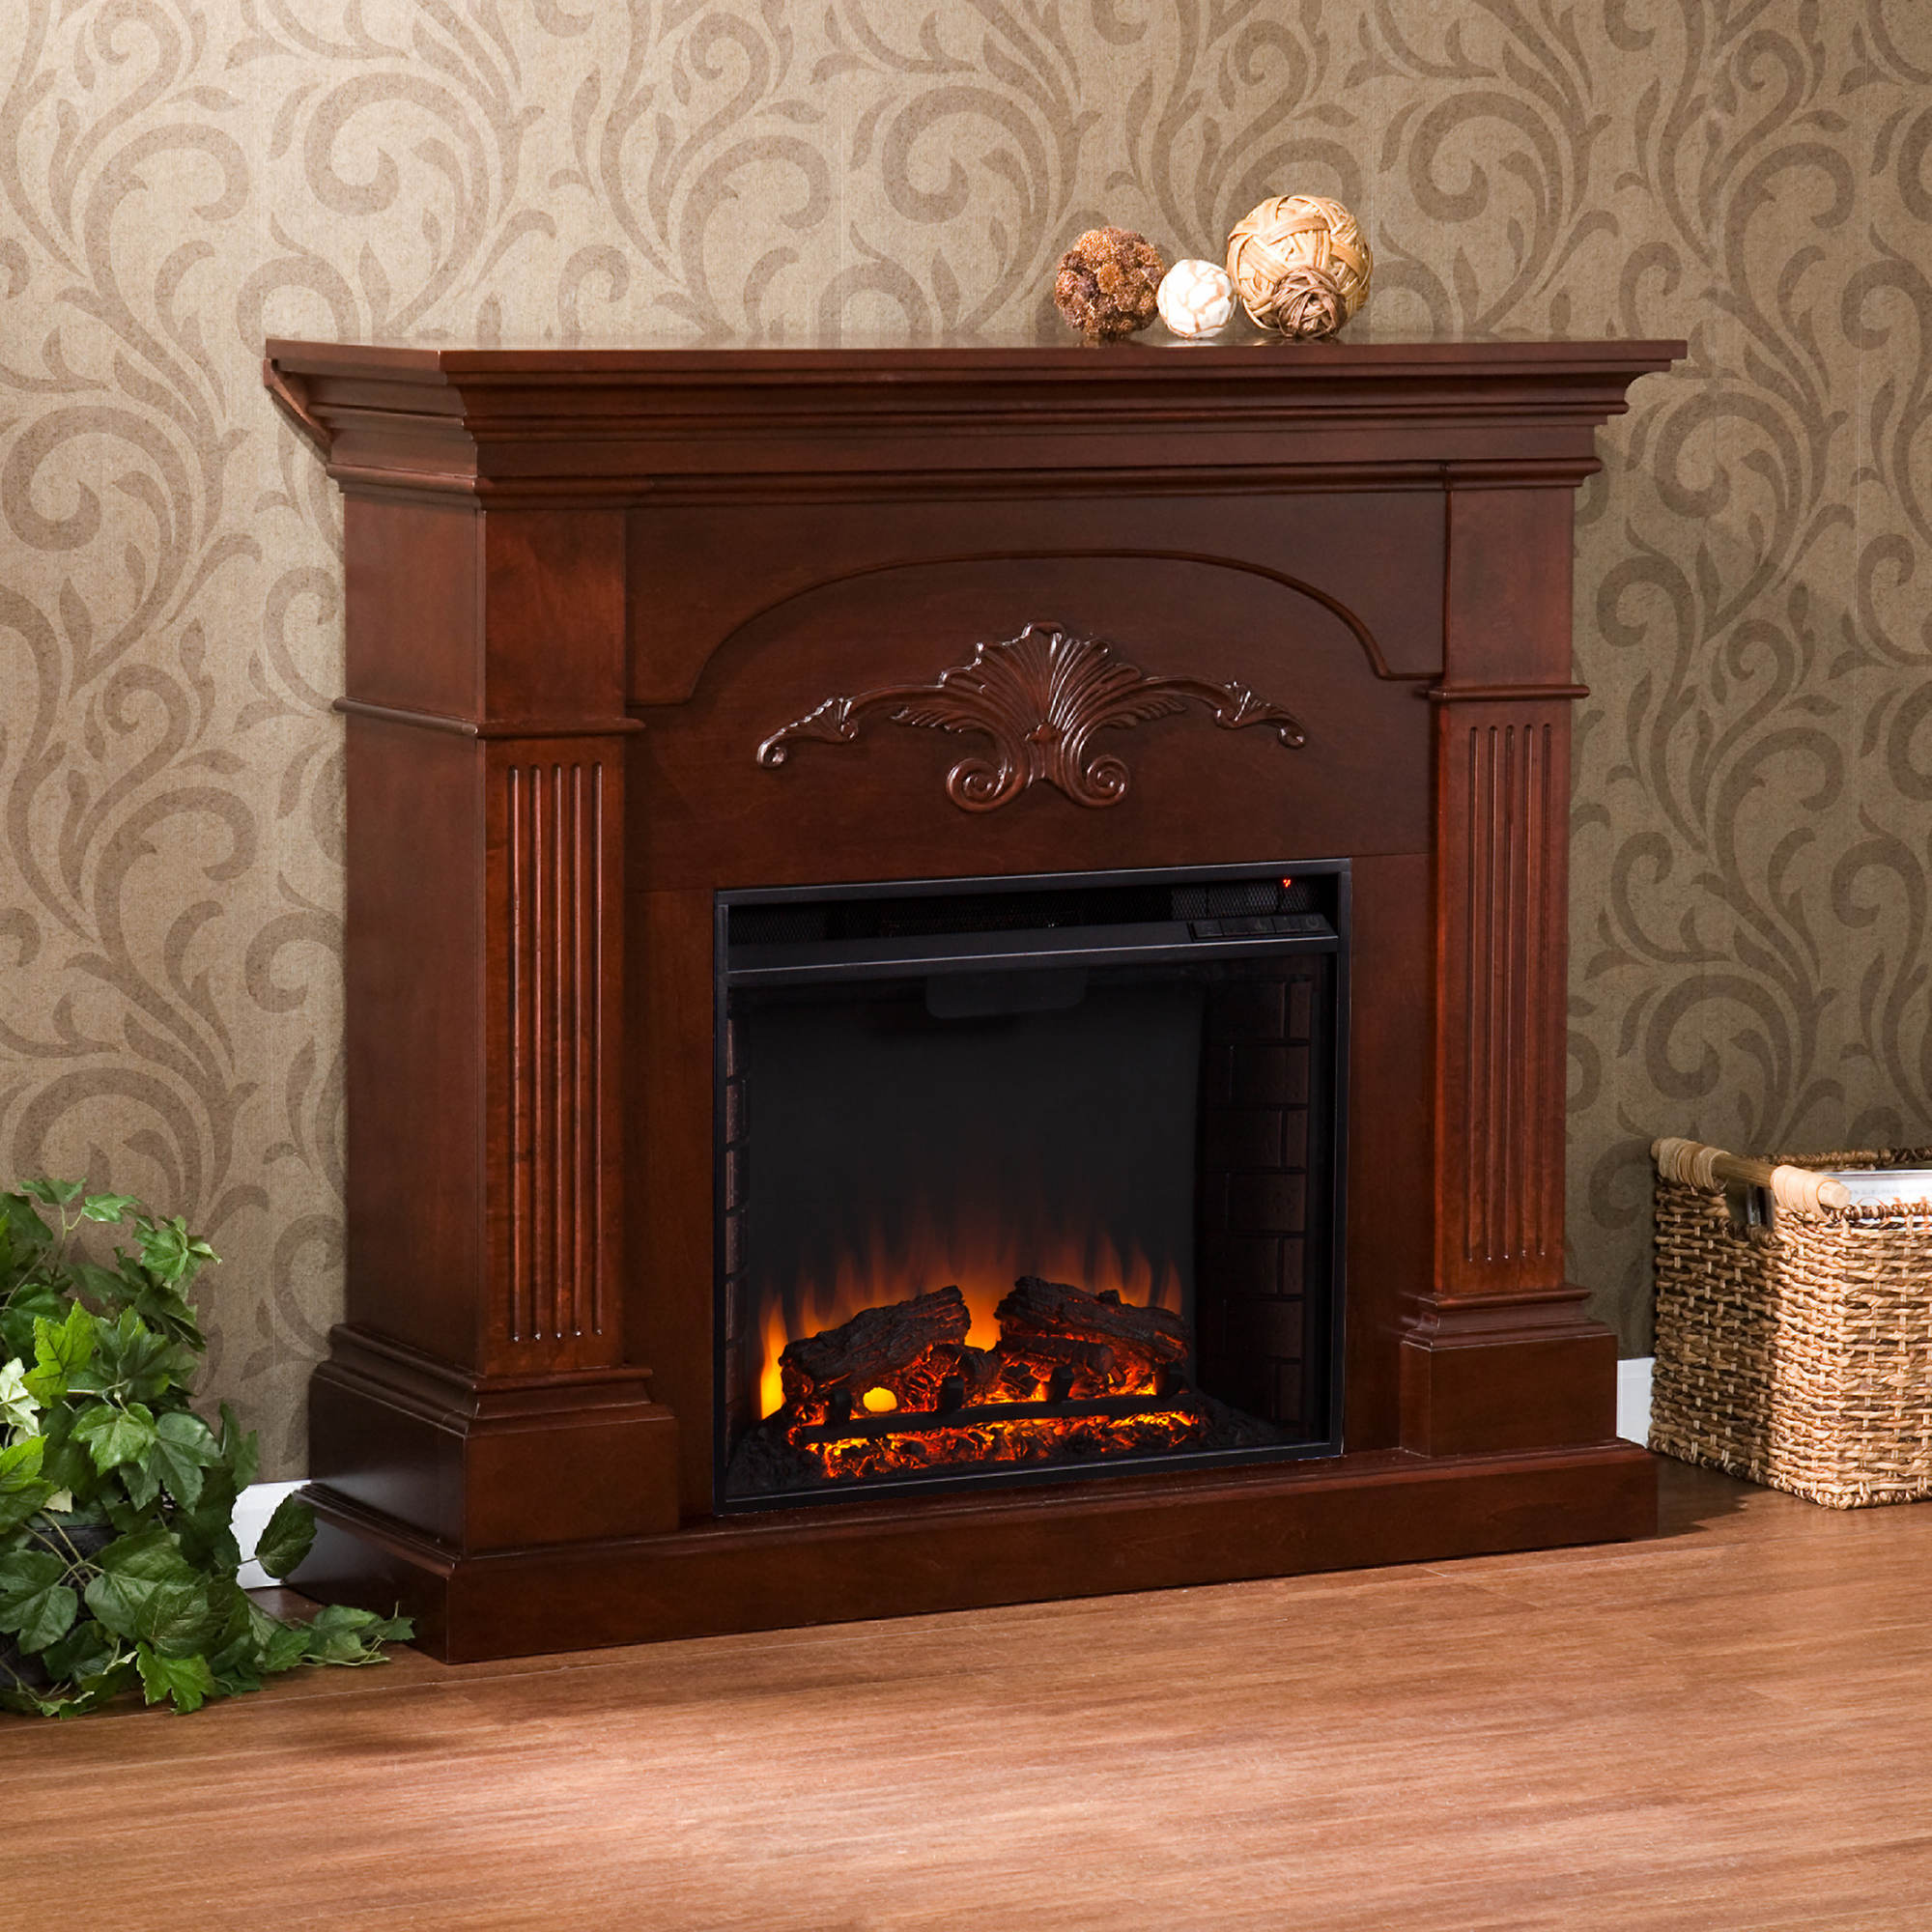 Fireplace tv stand electric fireplaces in arizona electric fireplace - Sei Florentine Electric Fireplace Mahogany